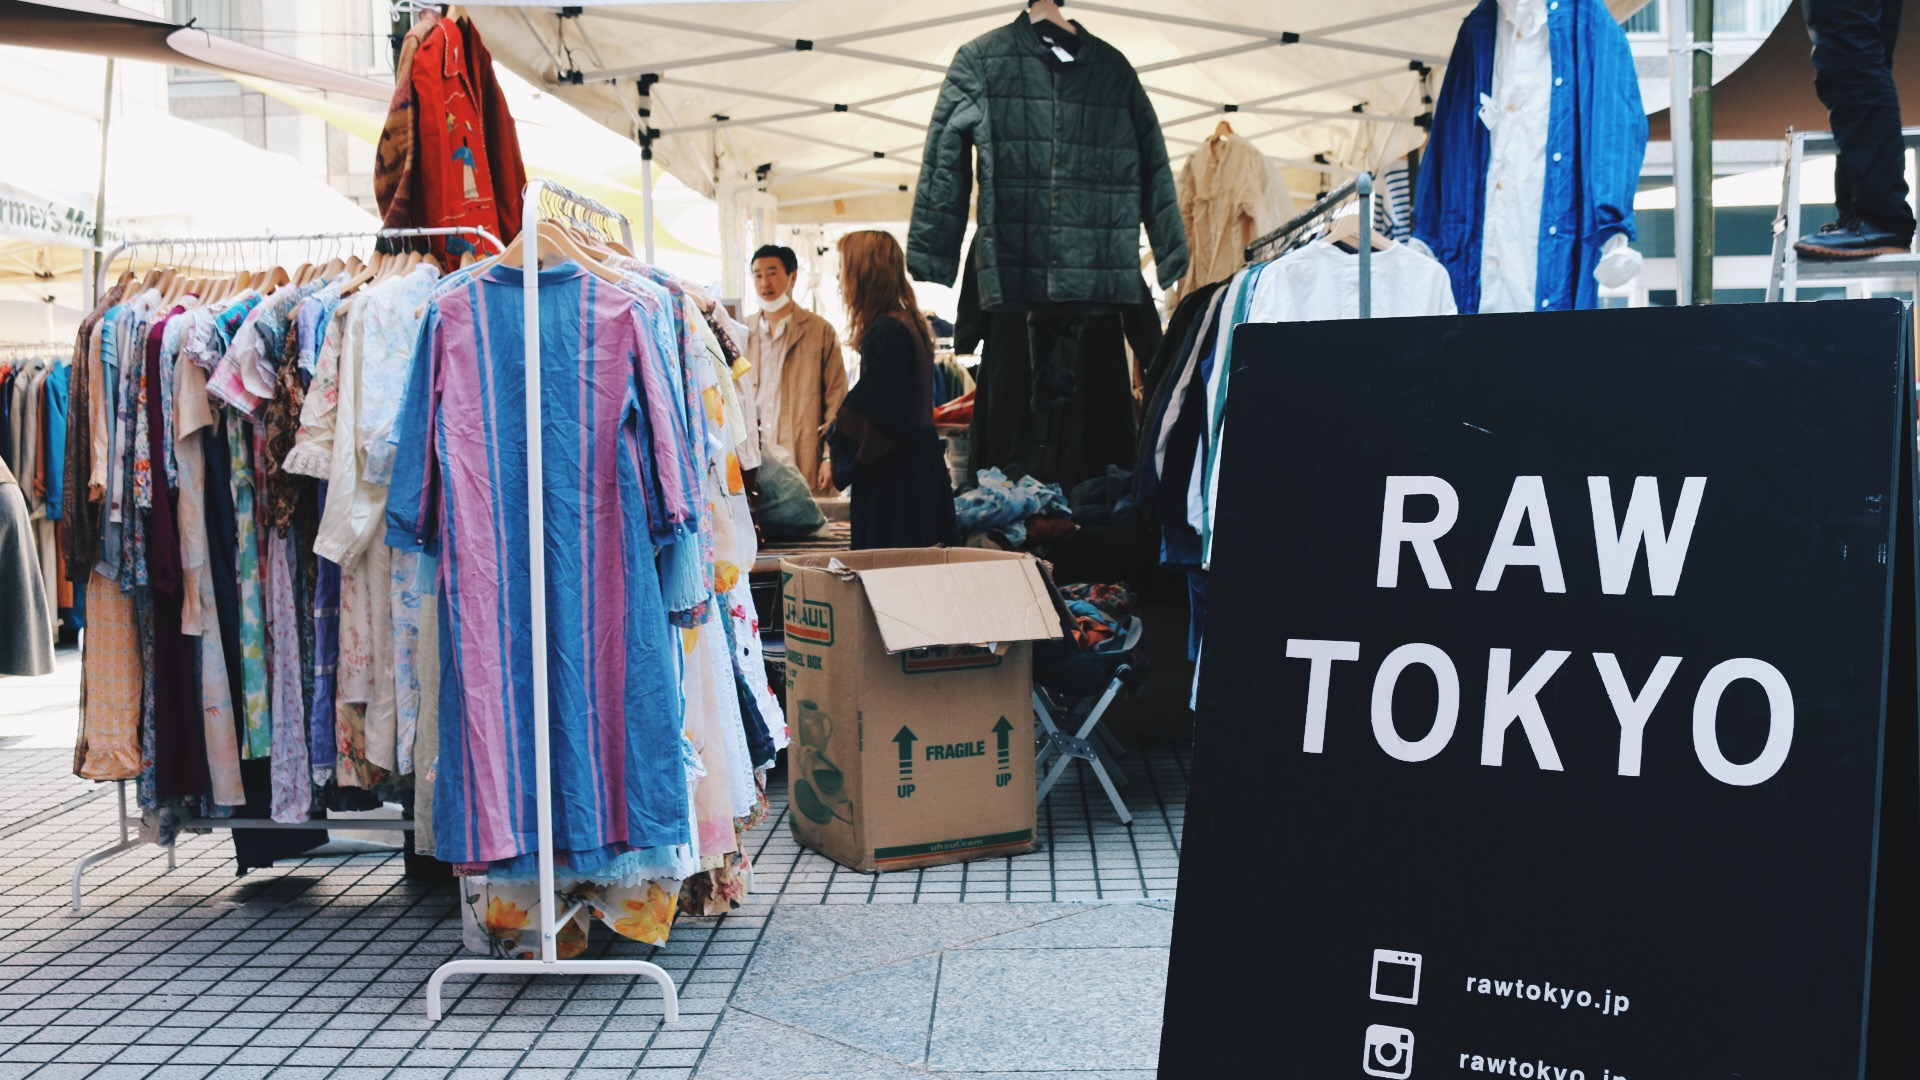 At the back is an awesome vintage clothing market called RAW Tokyo. So good!